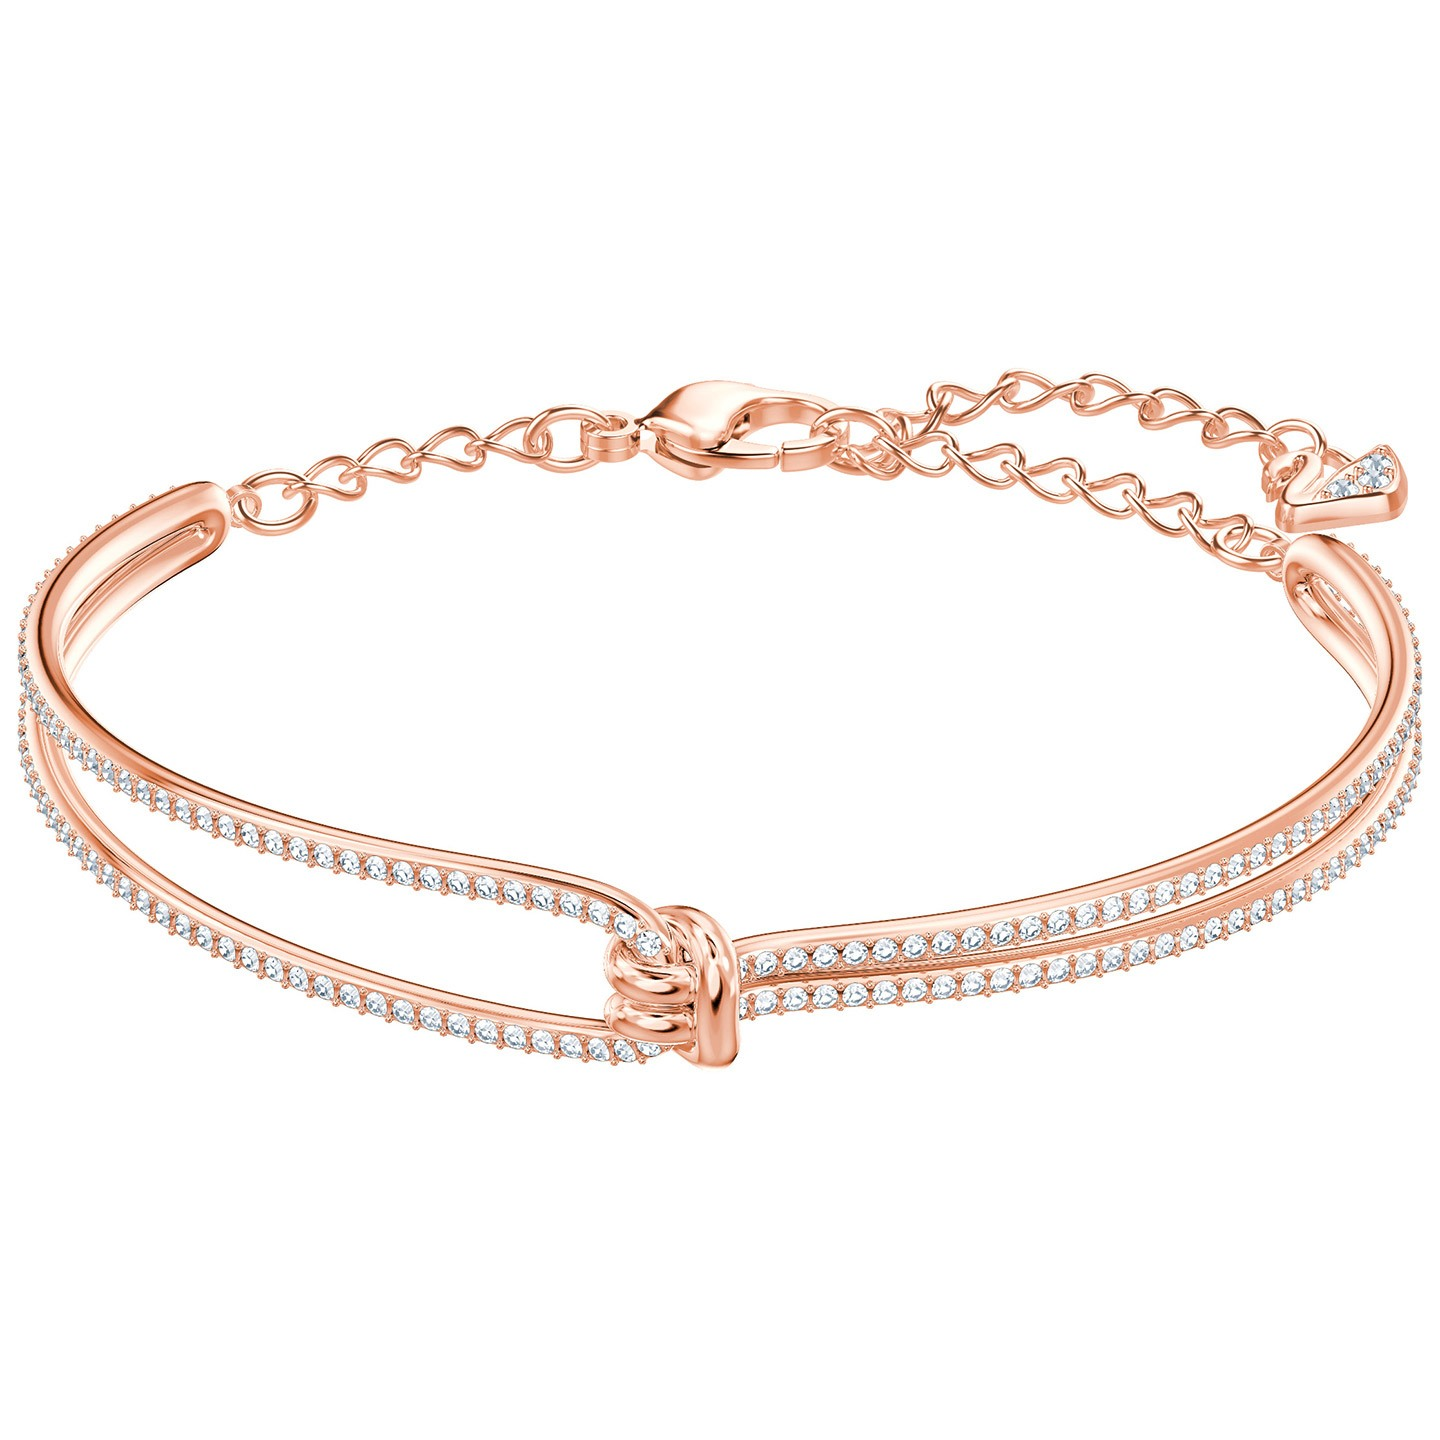 Swarovski-Lifelong-Bangle-White-Rose-gold-plating-5390818